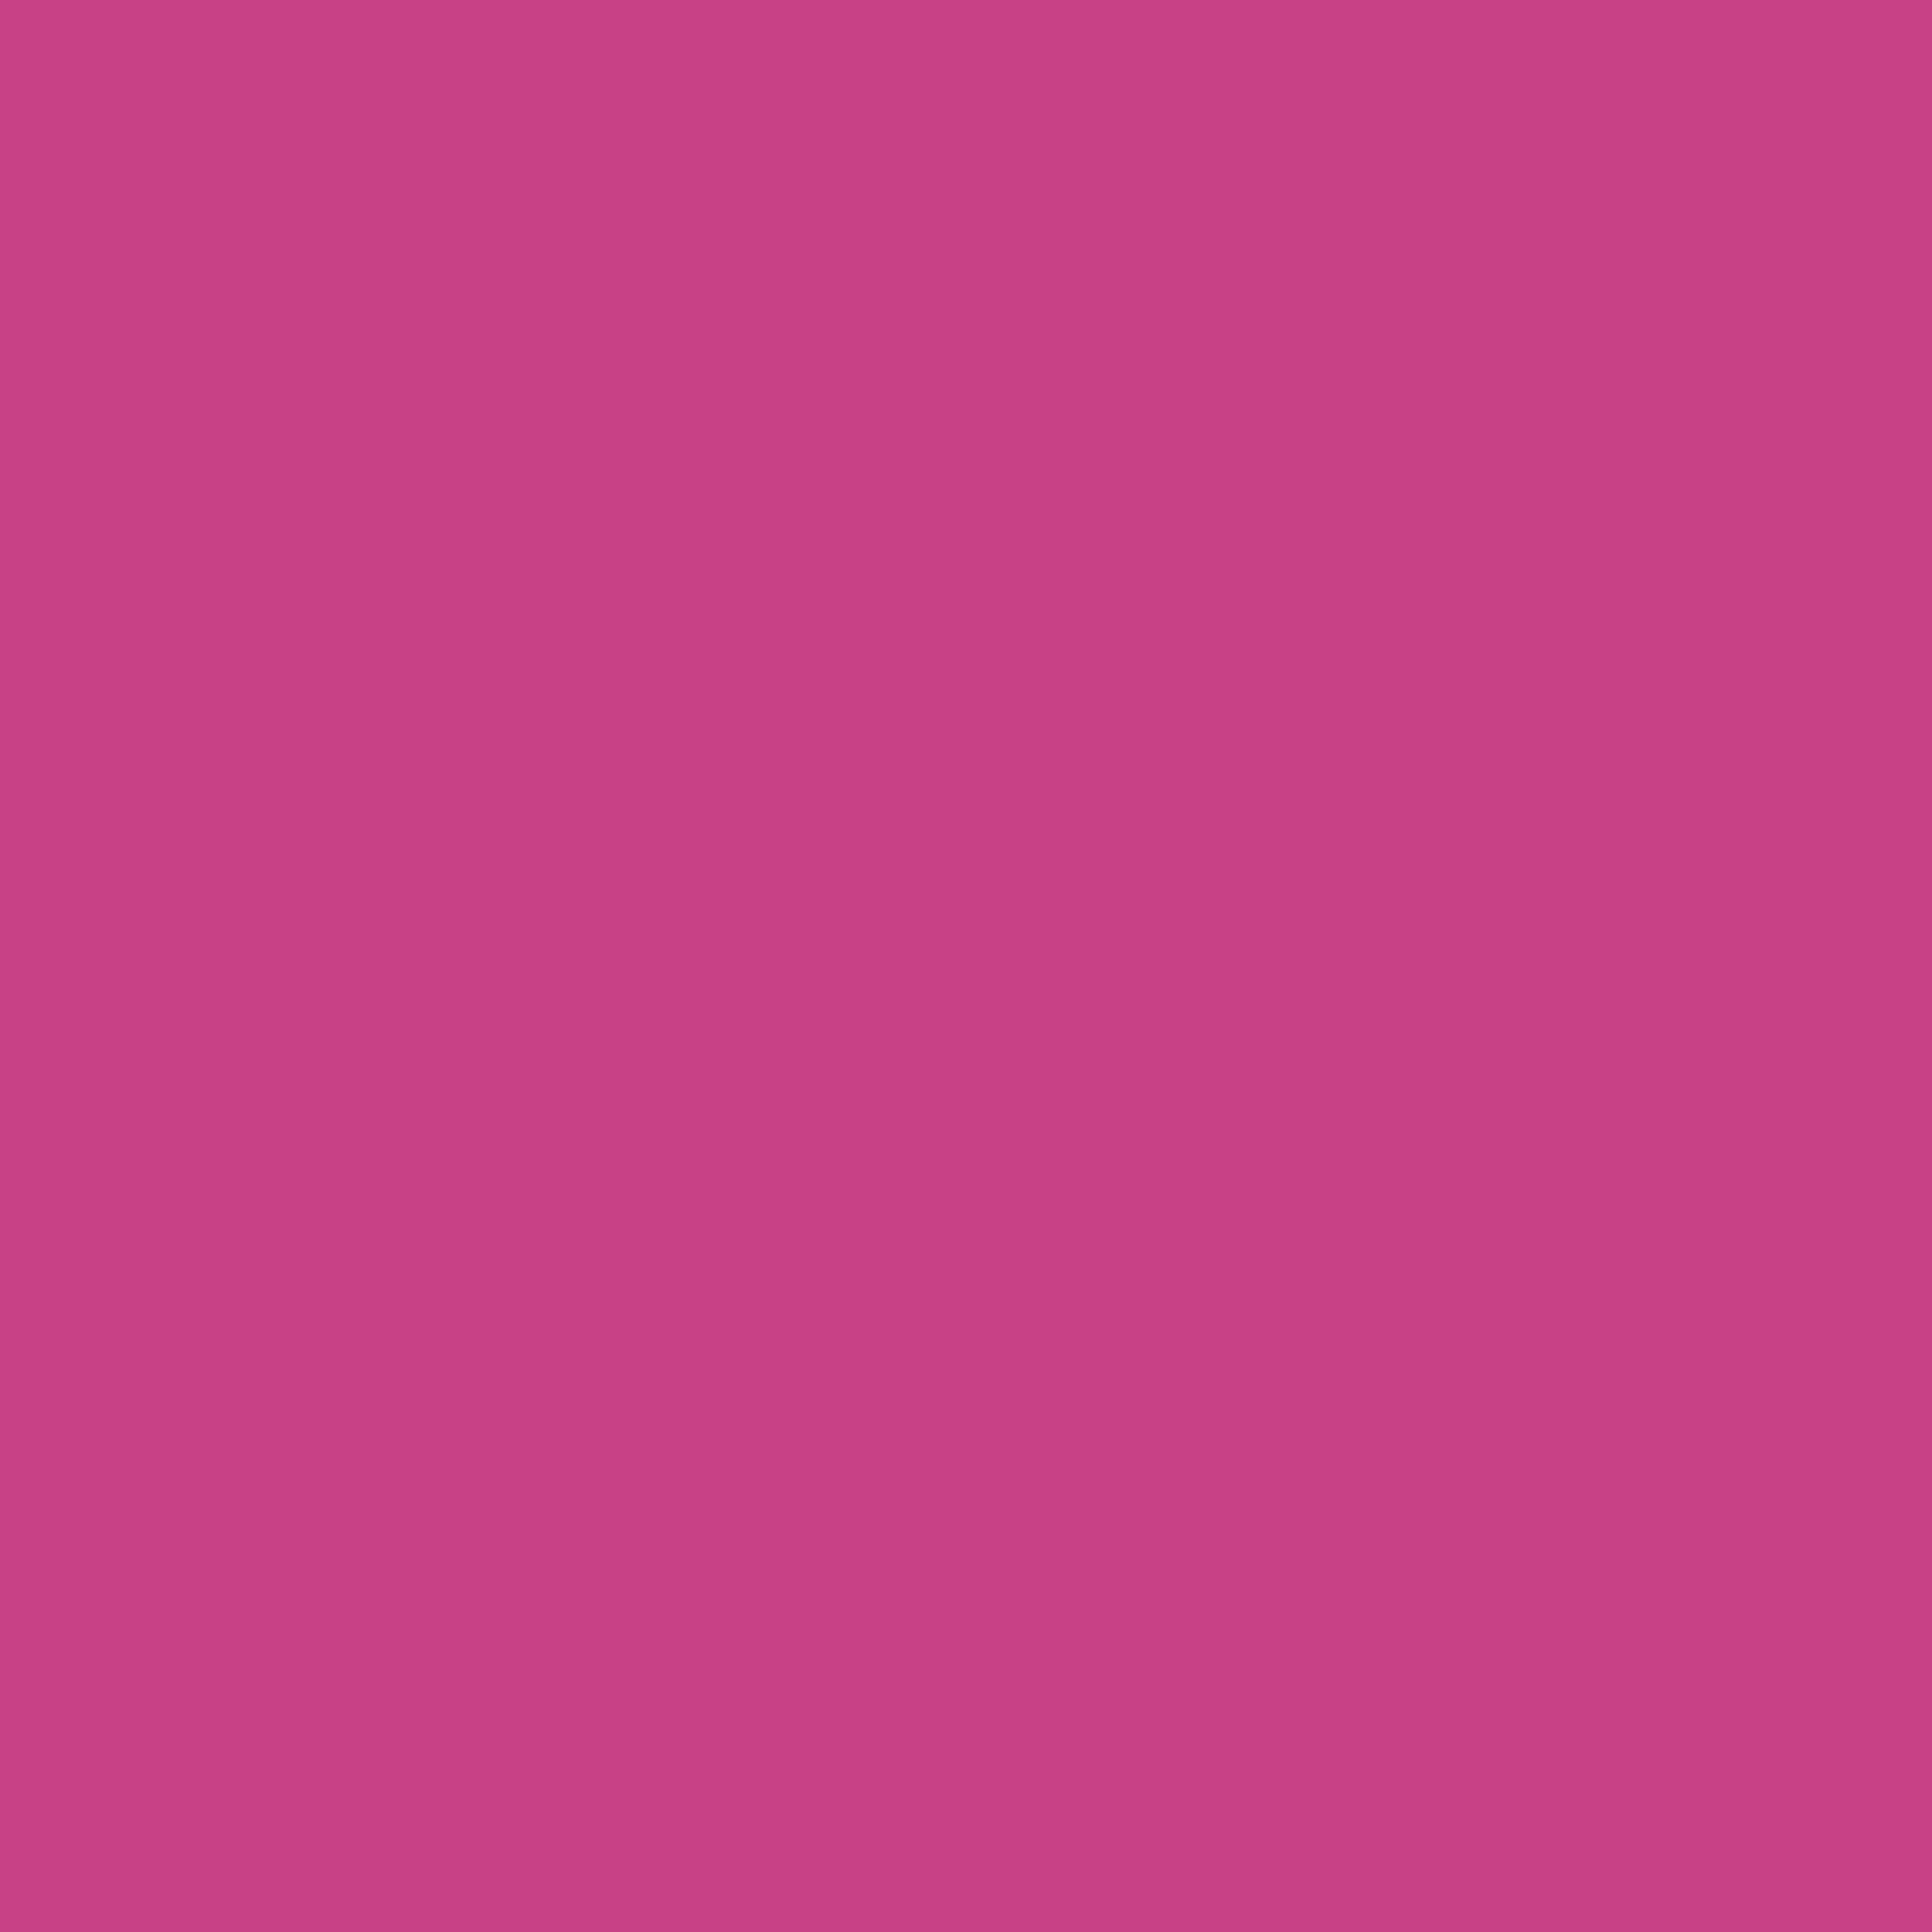 2732x2732 Smitten Solid Color Background